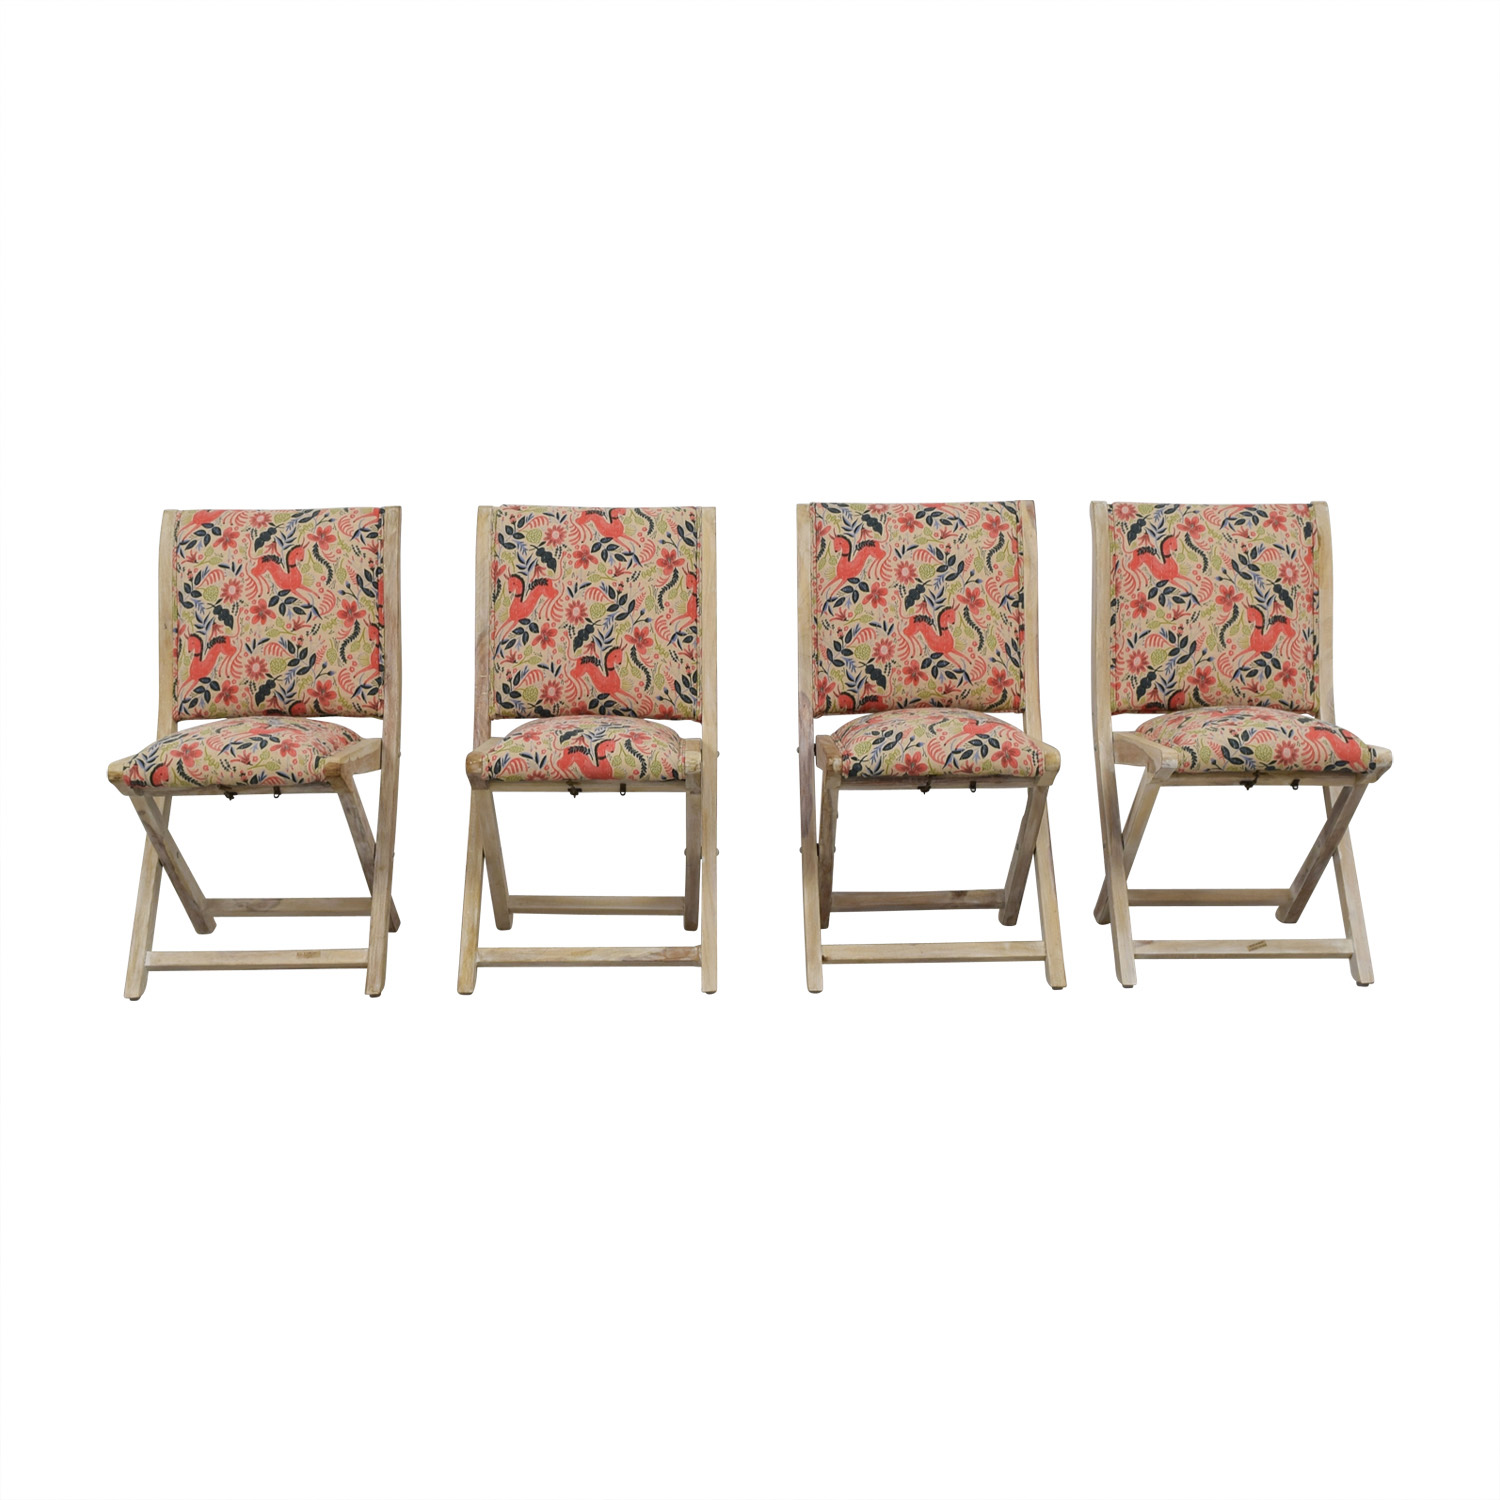 off anthropologie rustic multi colored unicorn folding chairs accent table lucite glass coffee granite top end tables versailles furniture steel patio large dining room bedroom